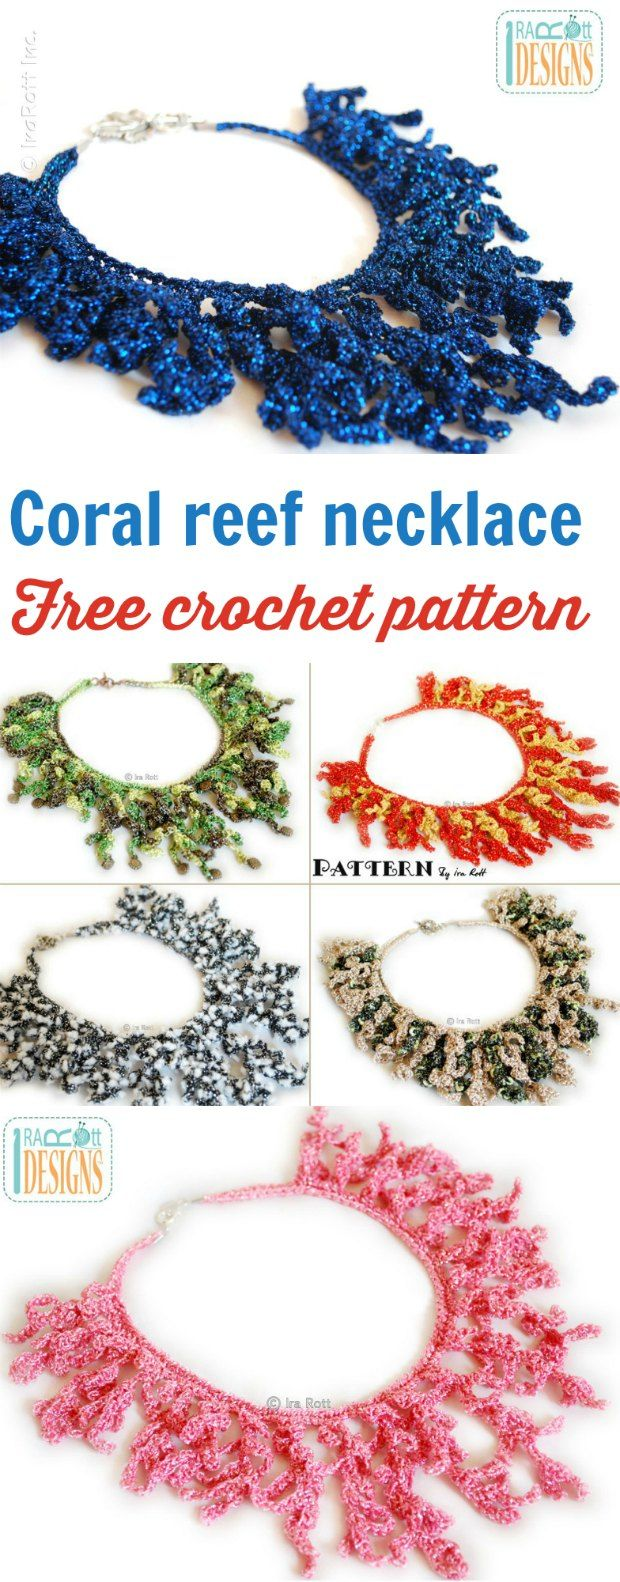 Free Crochet Necklace Coral Reef Pattern | ganchillo | Pinterest ...